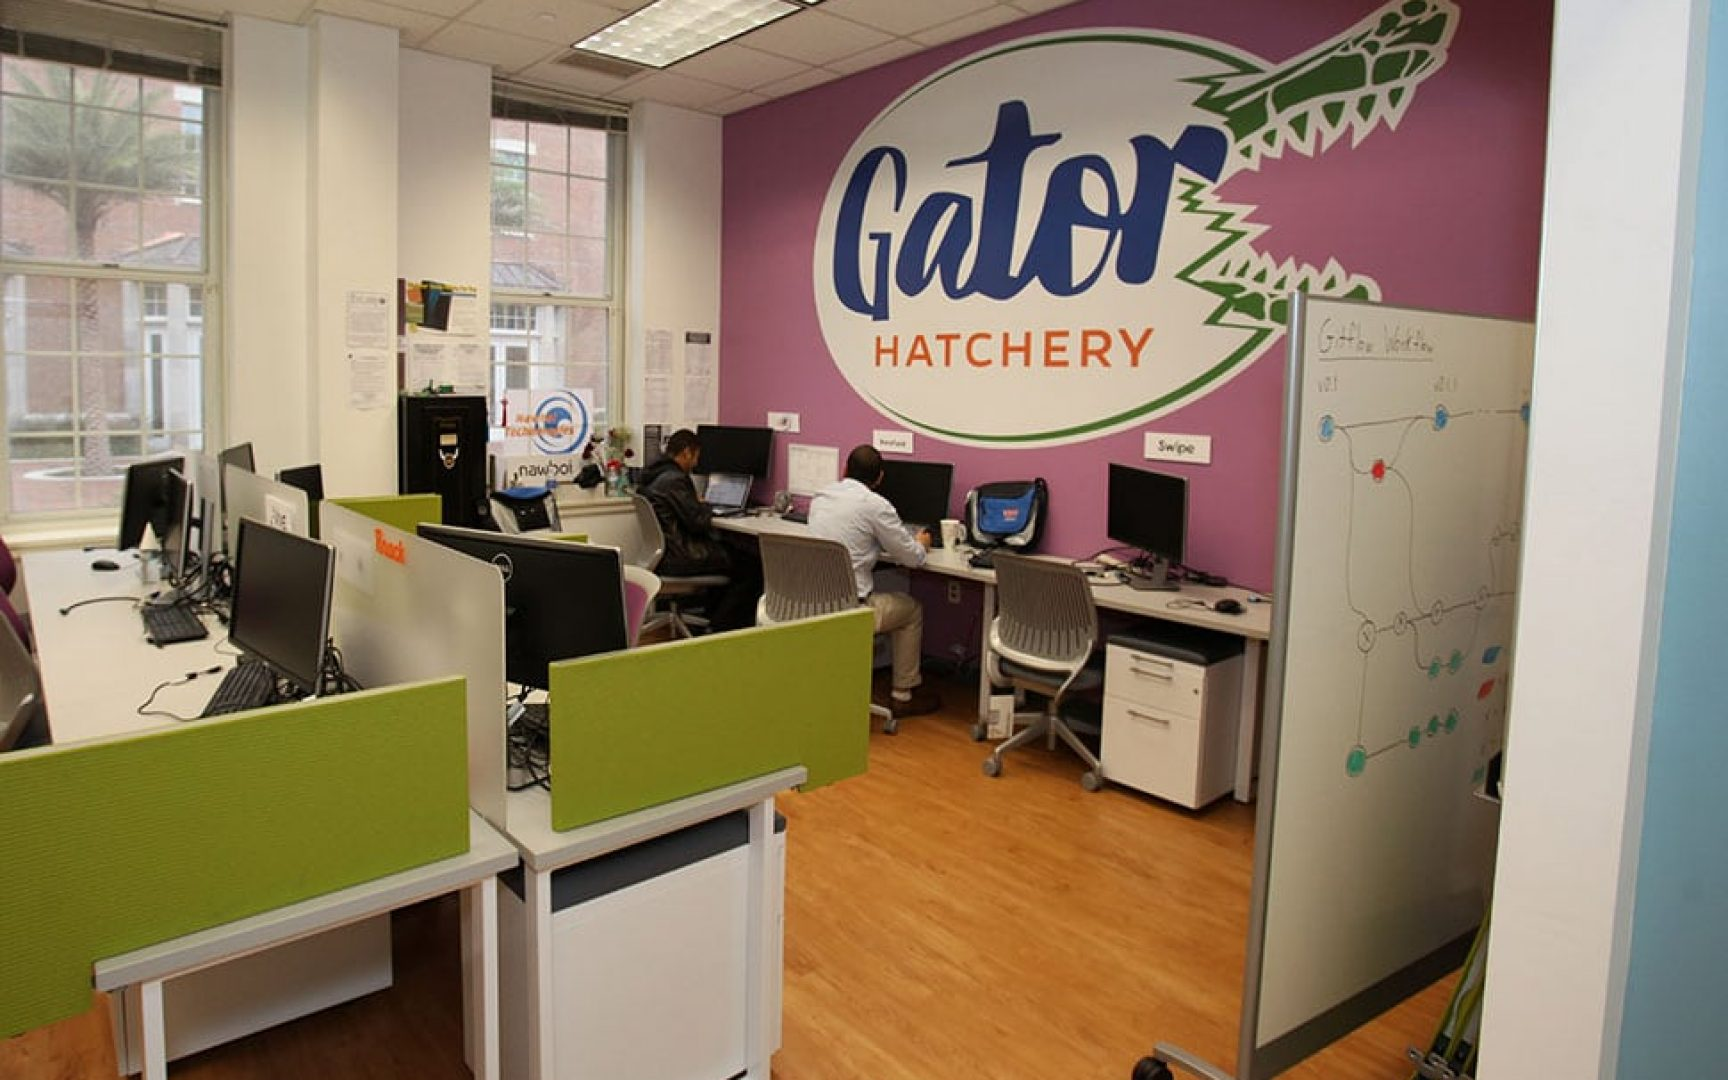 The Gator Hatchery room with work stations